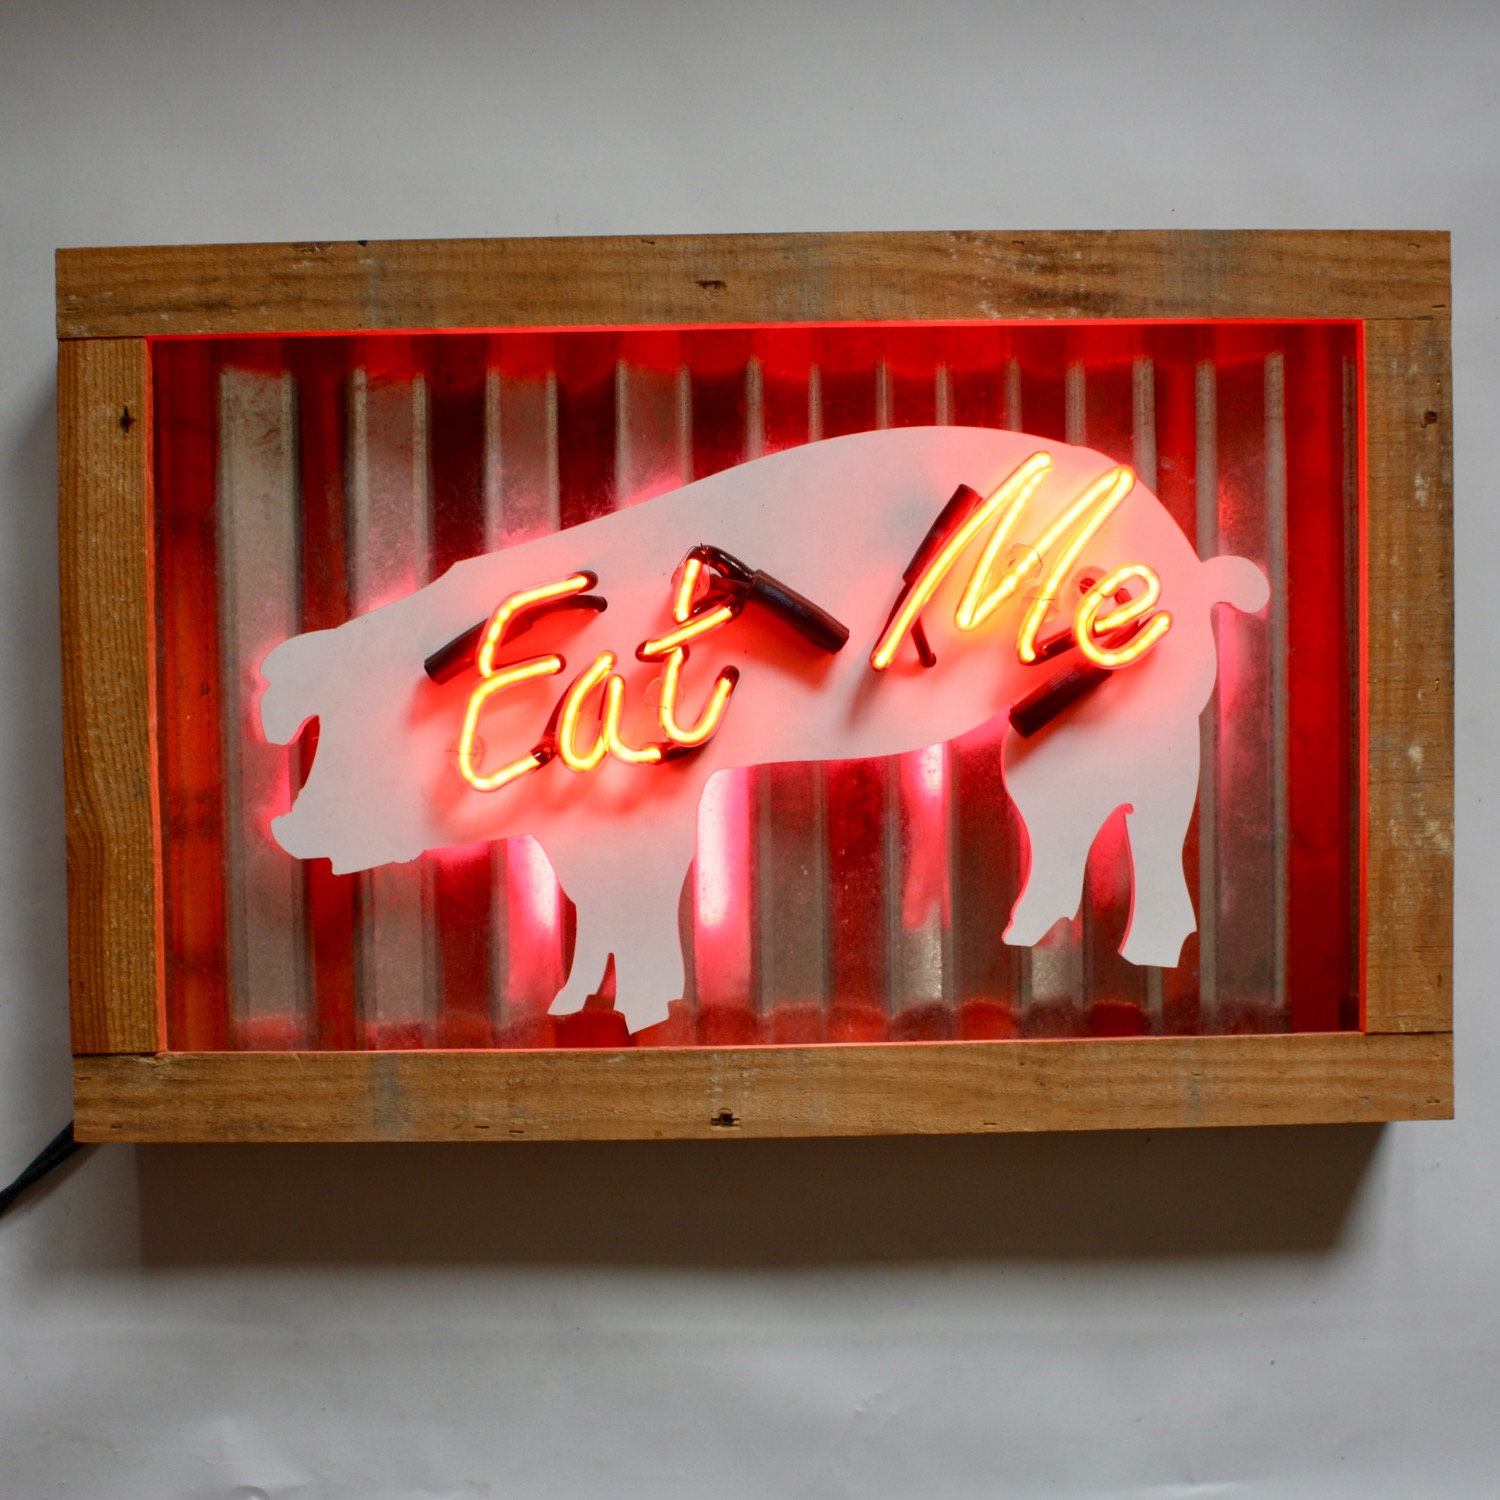 Copy of Layered Die Cut PVC Pig Shape in Metal+Wood Frame. Red Neon lettering and Pink Neon Accent under Pig - lit